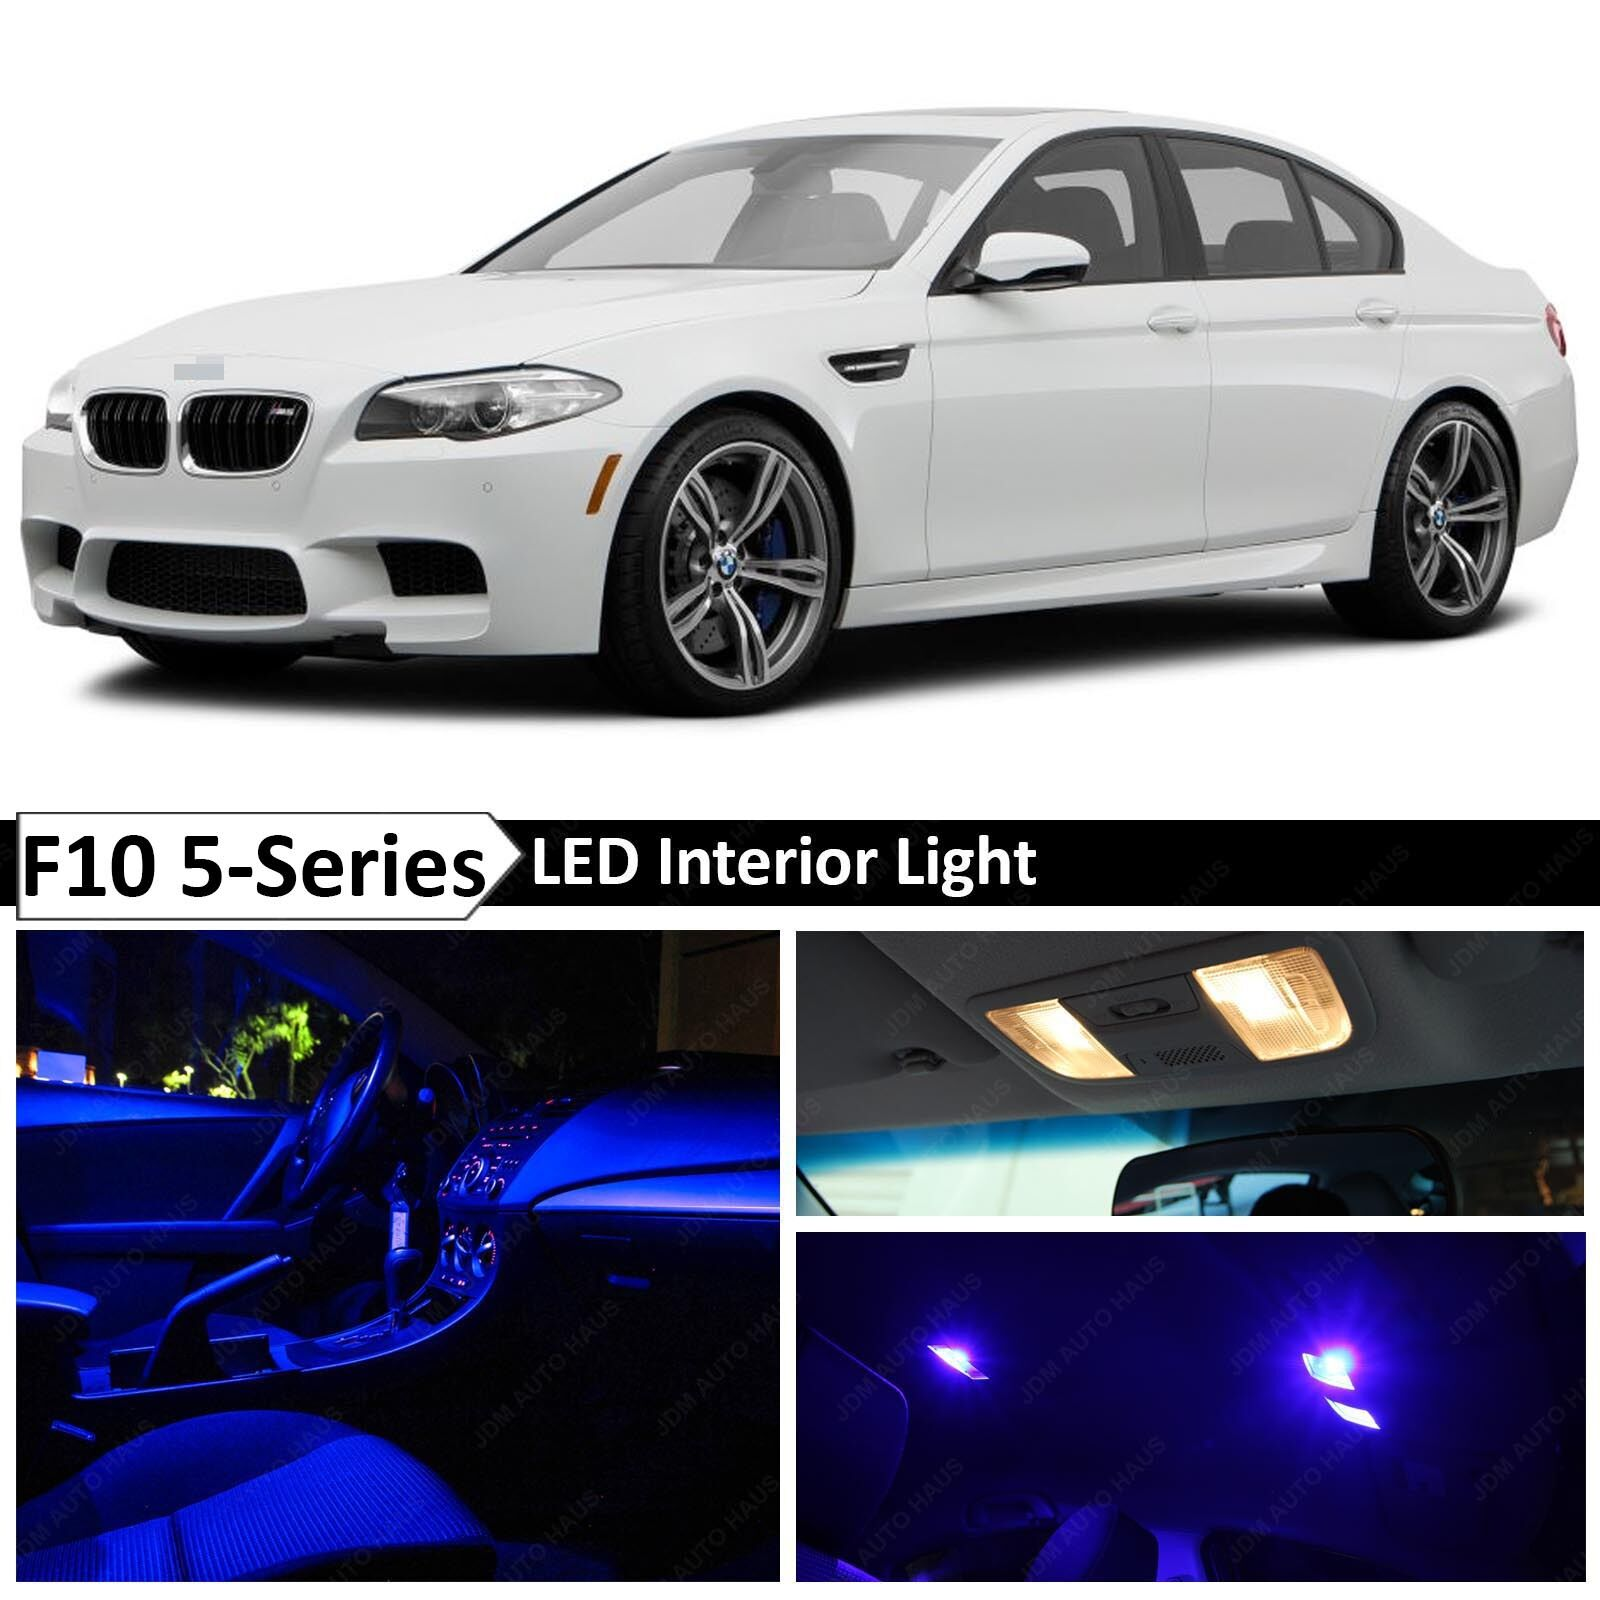 Bmw 2013 550i: Blue Interior LED Light Package For 2011-2015 BMW 5 Series